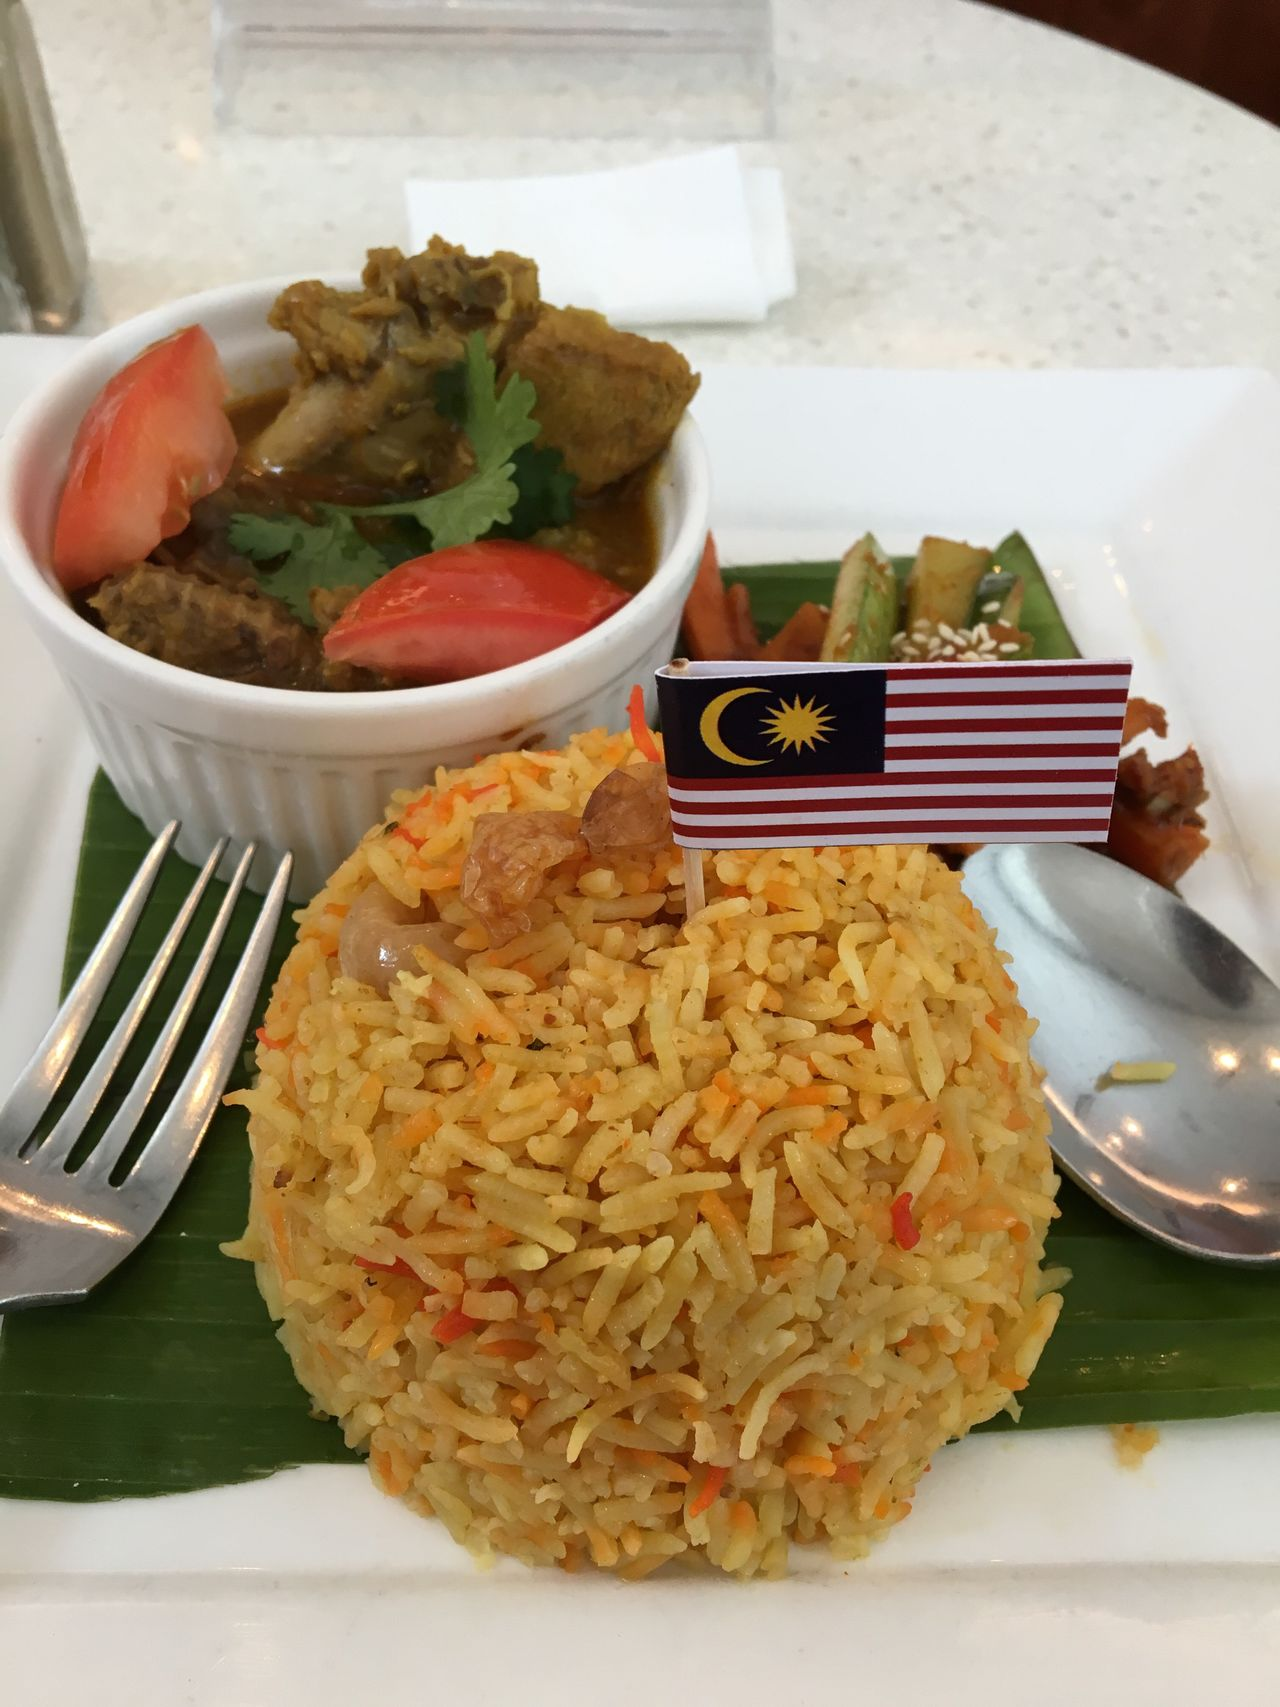 Malaysian Briyani Chicken Masala... Lunch Lunchtime Lunch Break Rice Briyani BriyaniRice BriyaniAyam Malaysia Malaysian Food Food Chicken Masala Chicken Masala Acar Plate Fork And Spoon Delicious Flag